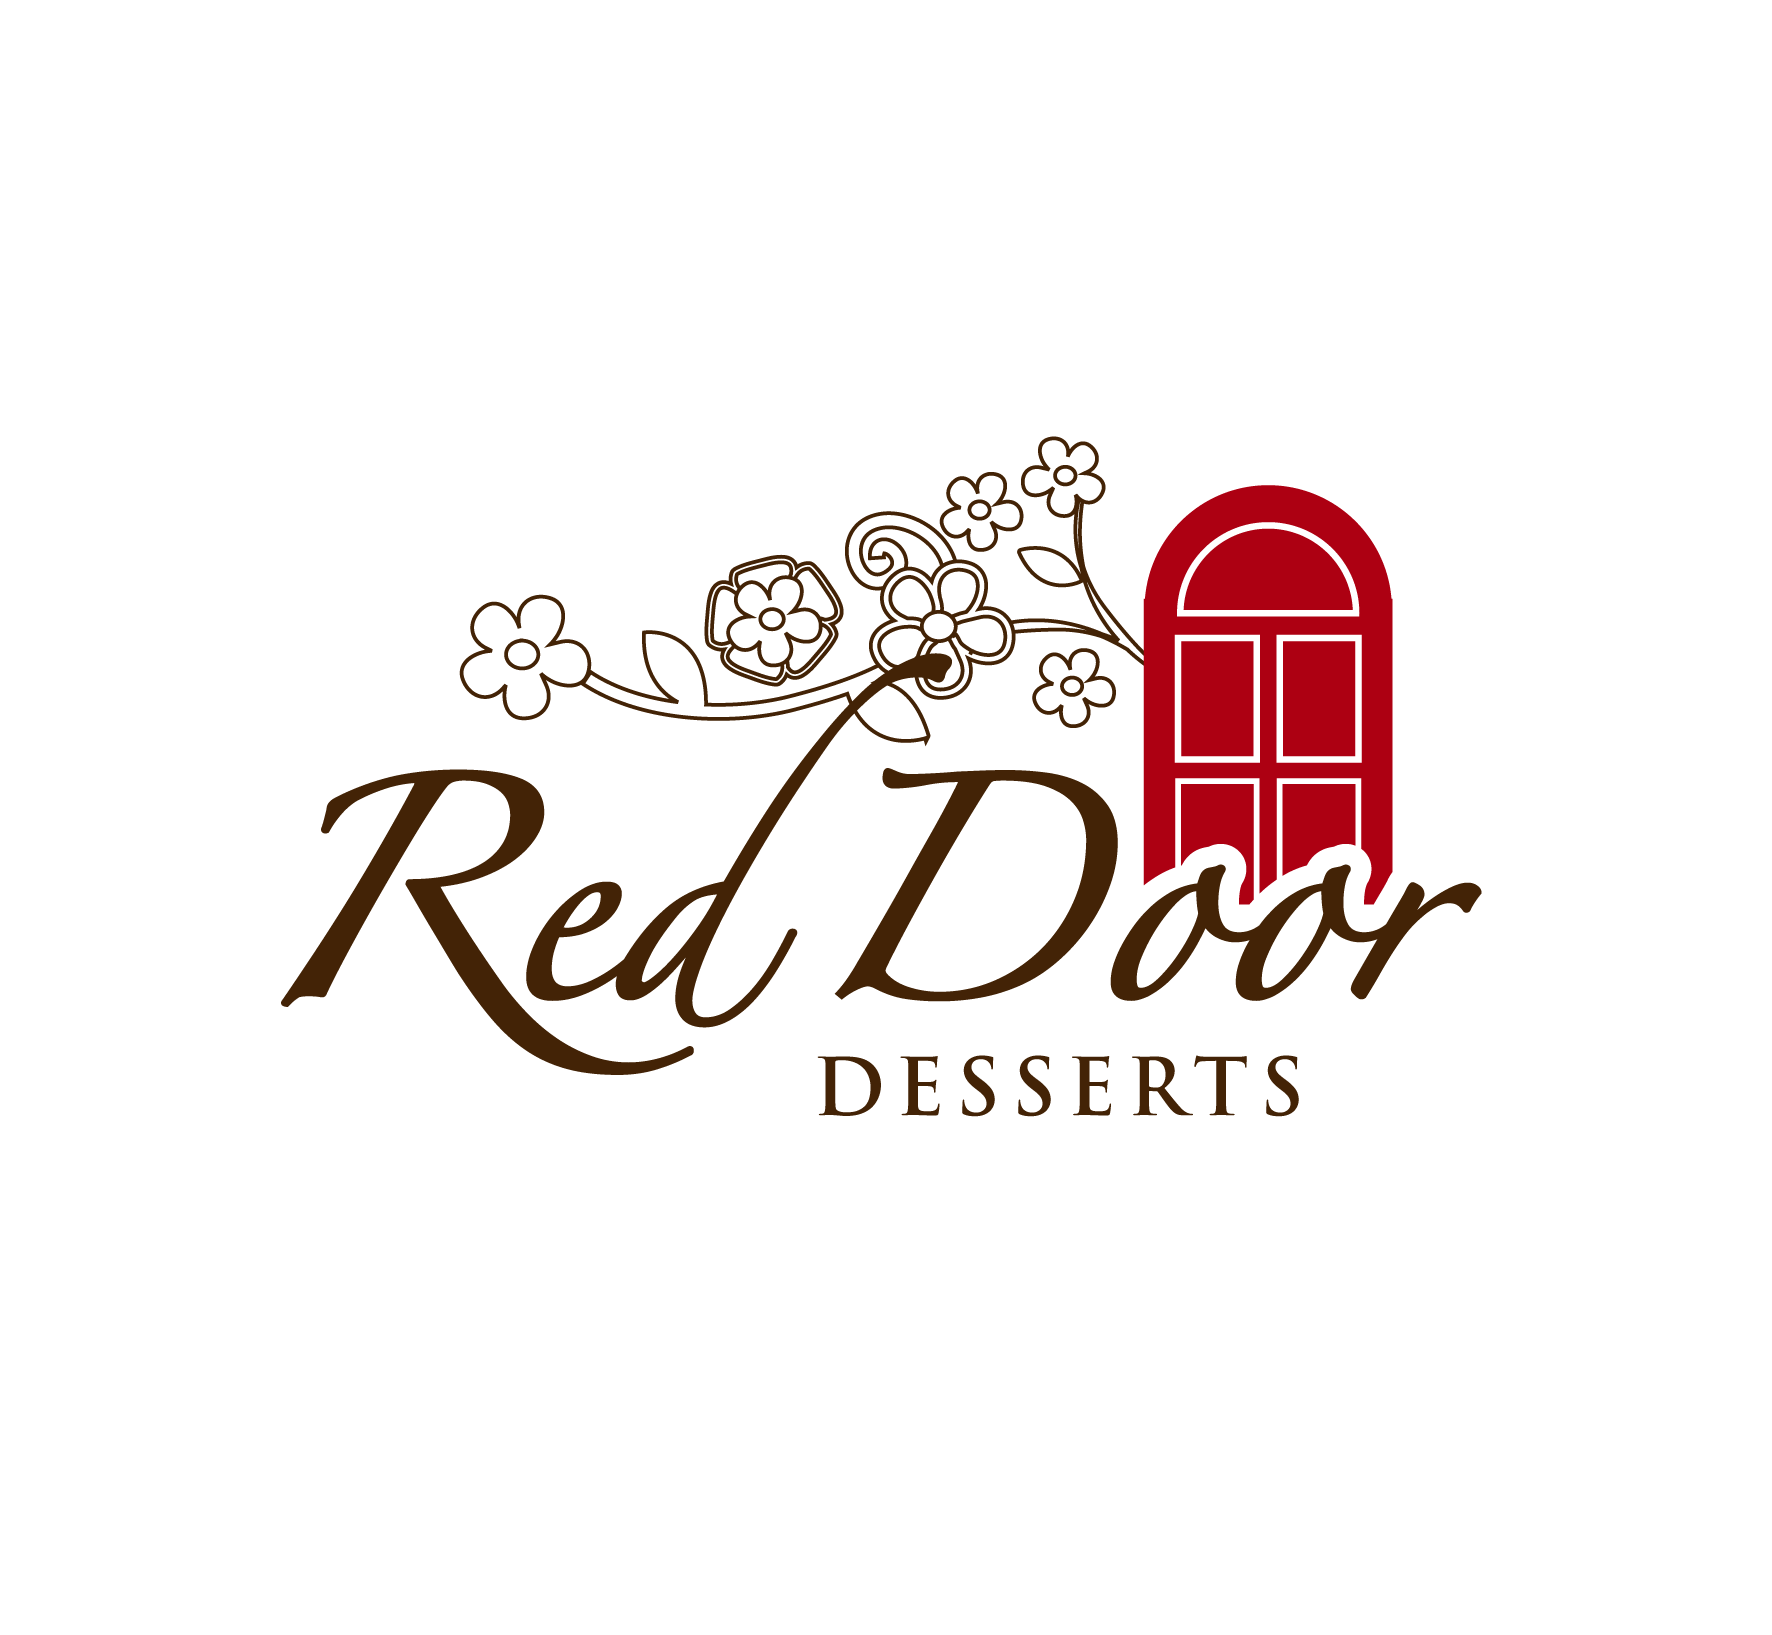 Logo Design by luna - Entry No. 113 in the Logo Design Contest Fun Logo Design for Red Door Desserts.